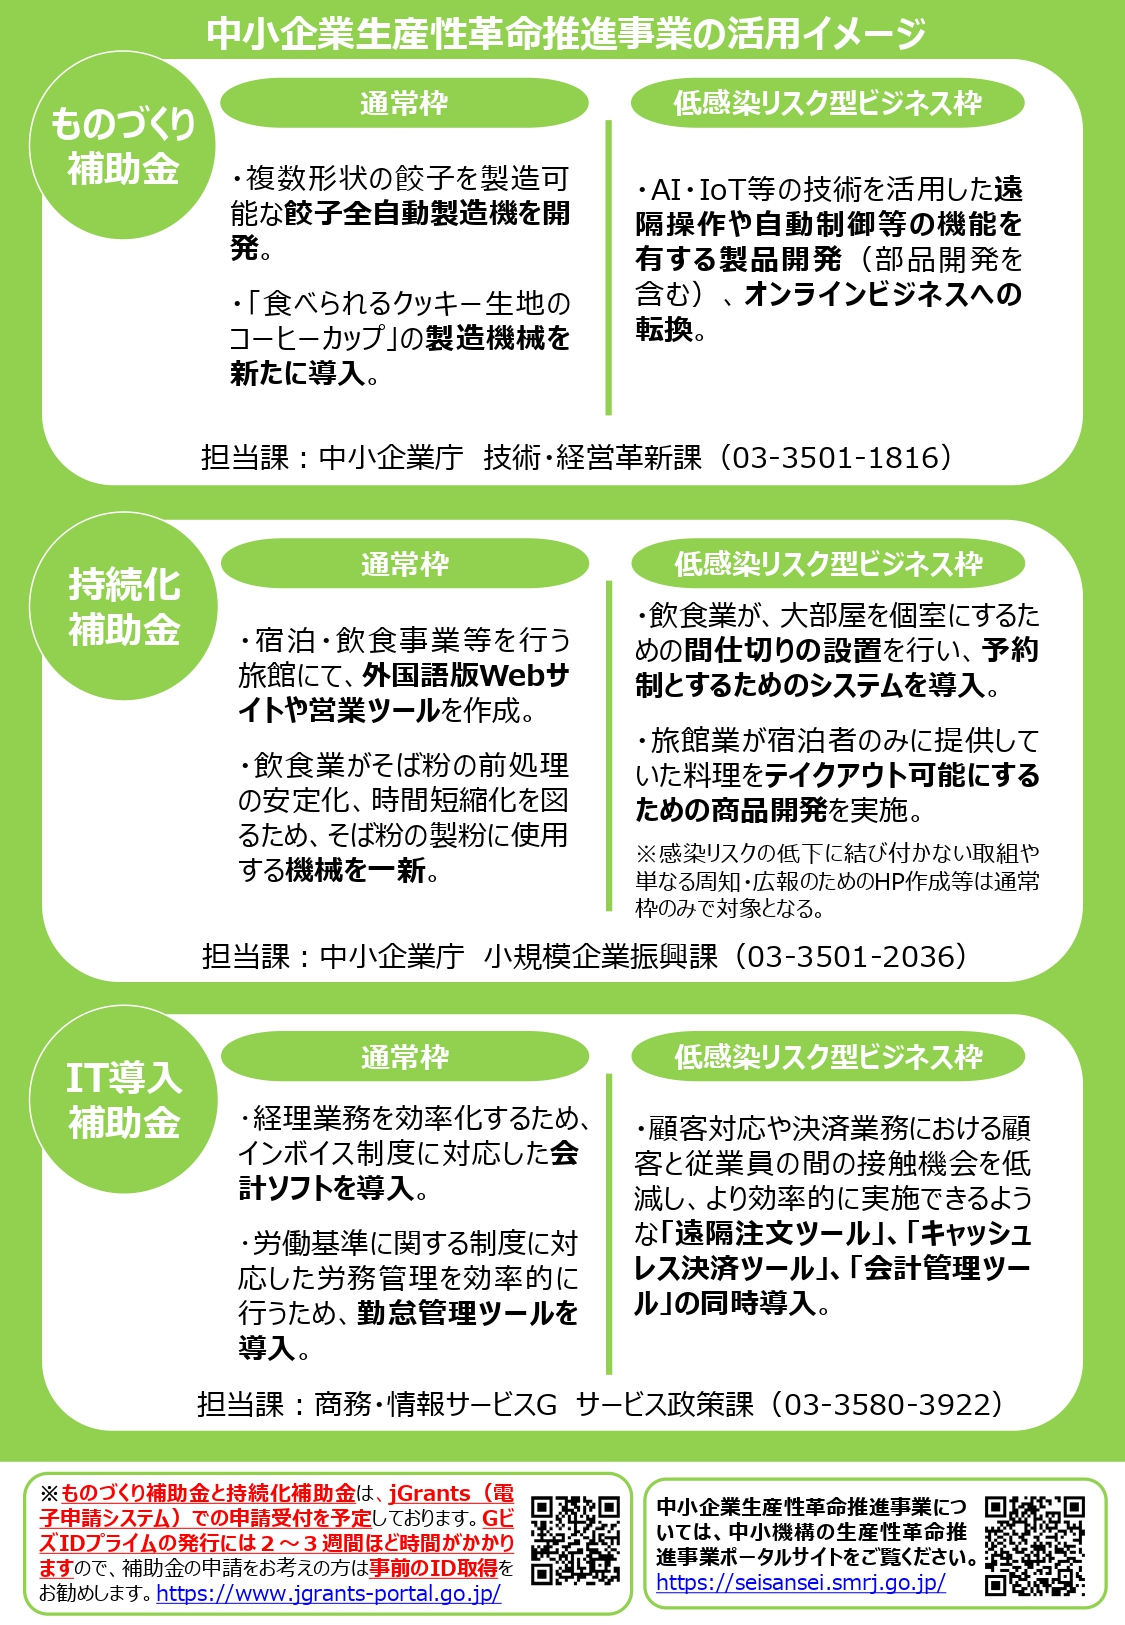 leaflet経済産業省_page-0005